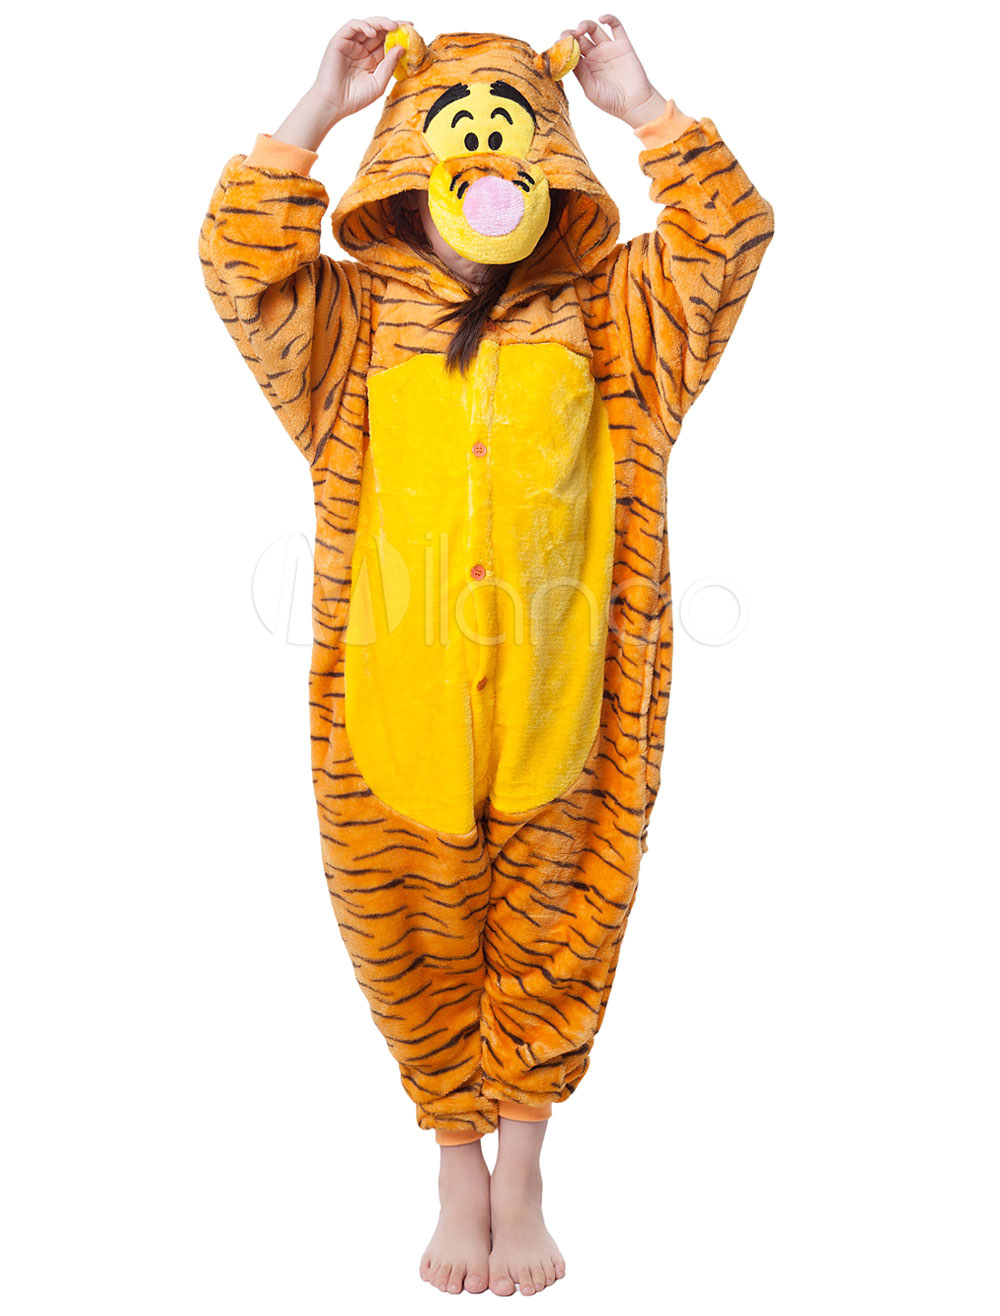 Buy Kigurumi Pajama Tiger Onesie Yelllow Synthetic For Kids Jumpsuit Mascot Costume Halloween for $18.26 in Milanoo store